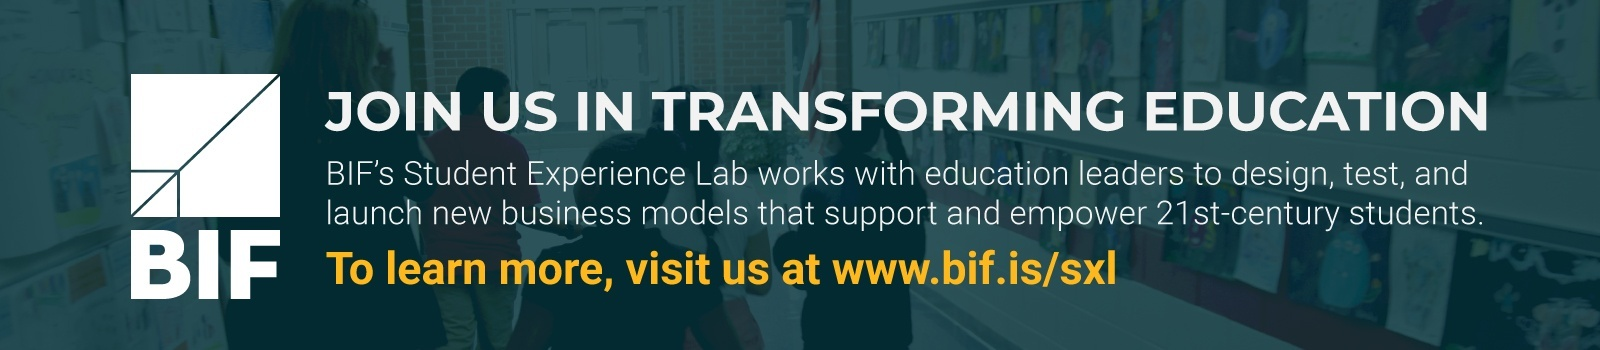 Join us in transforming education.